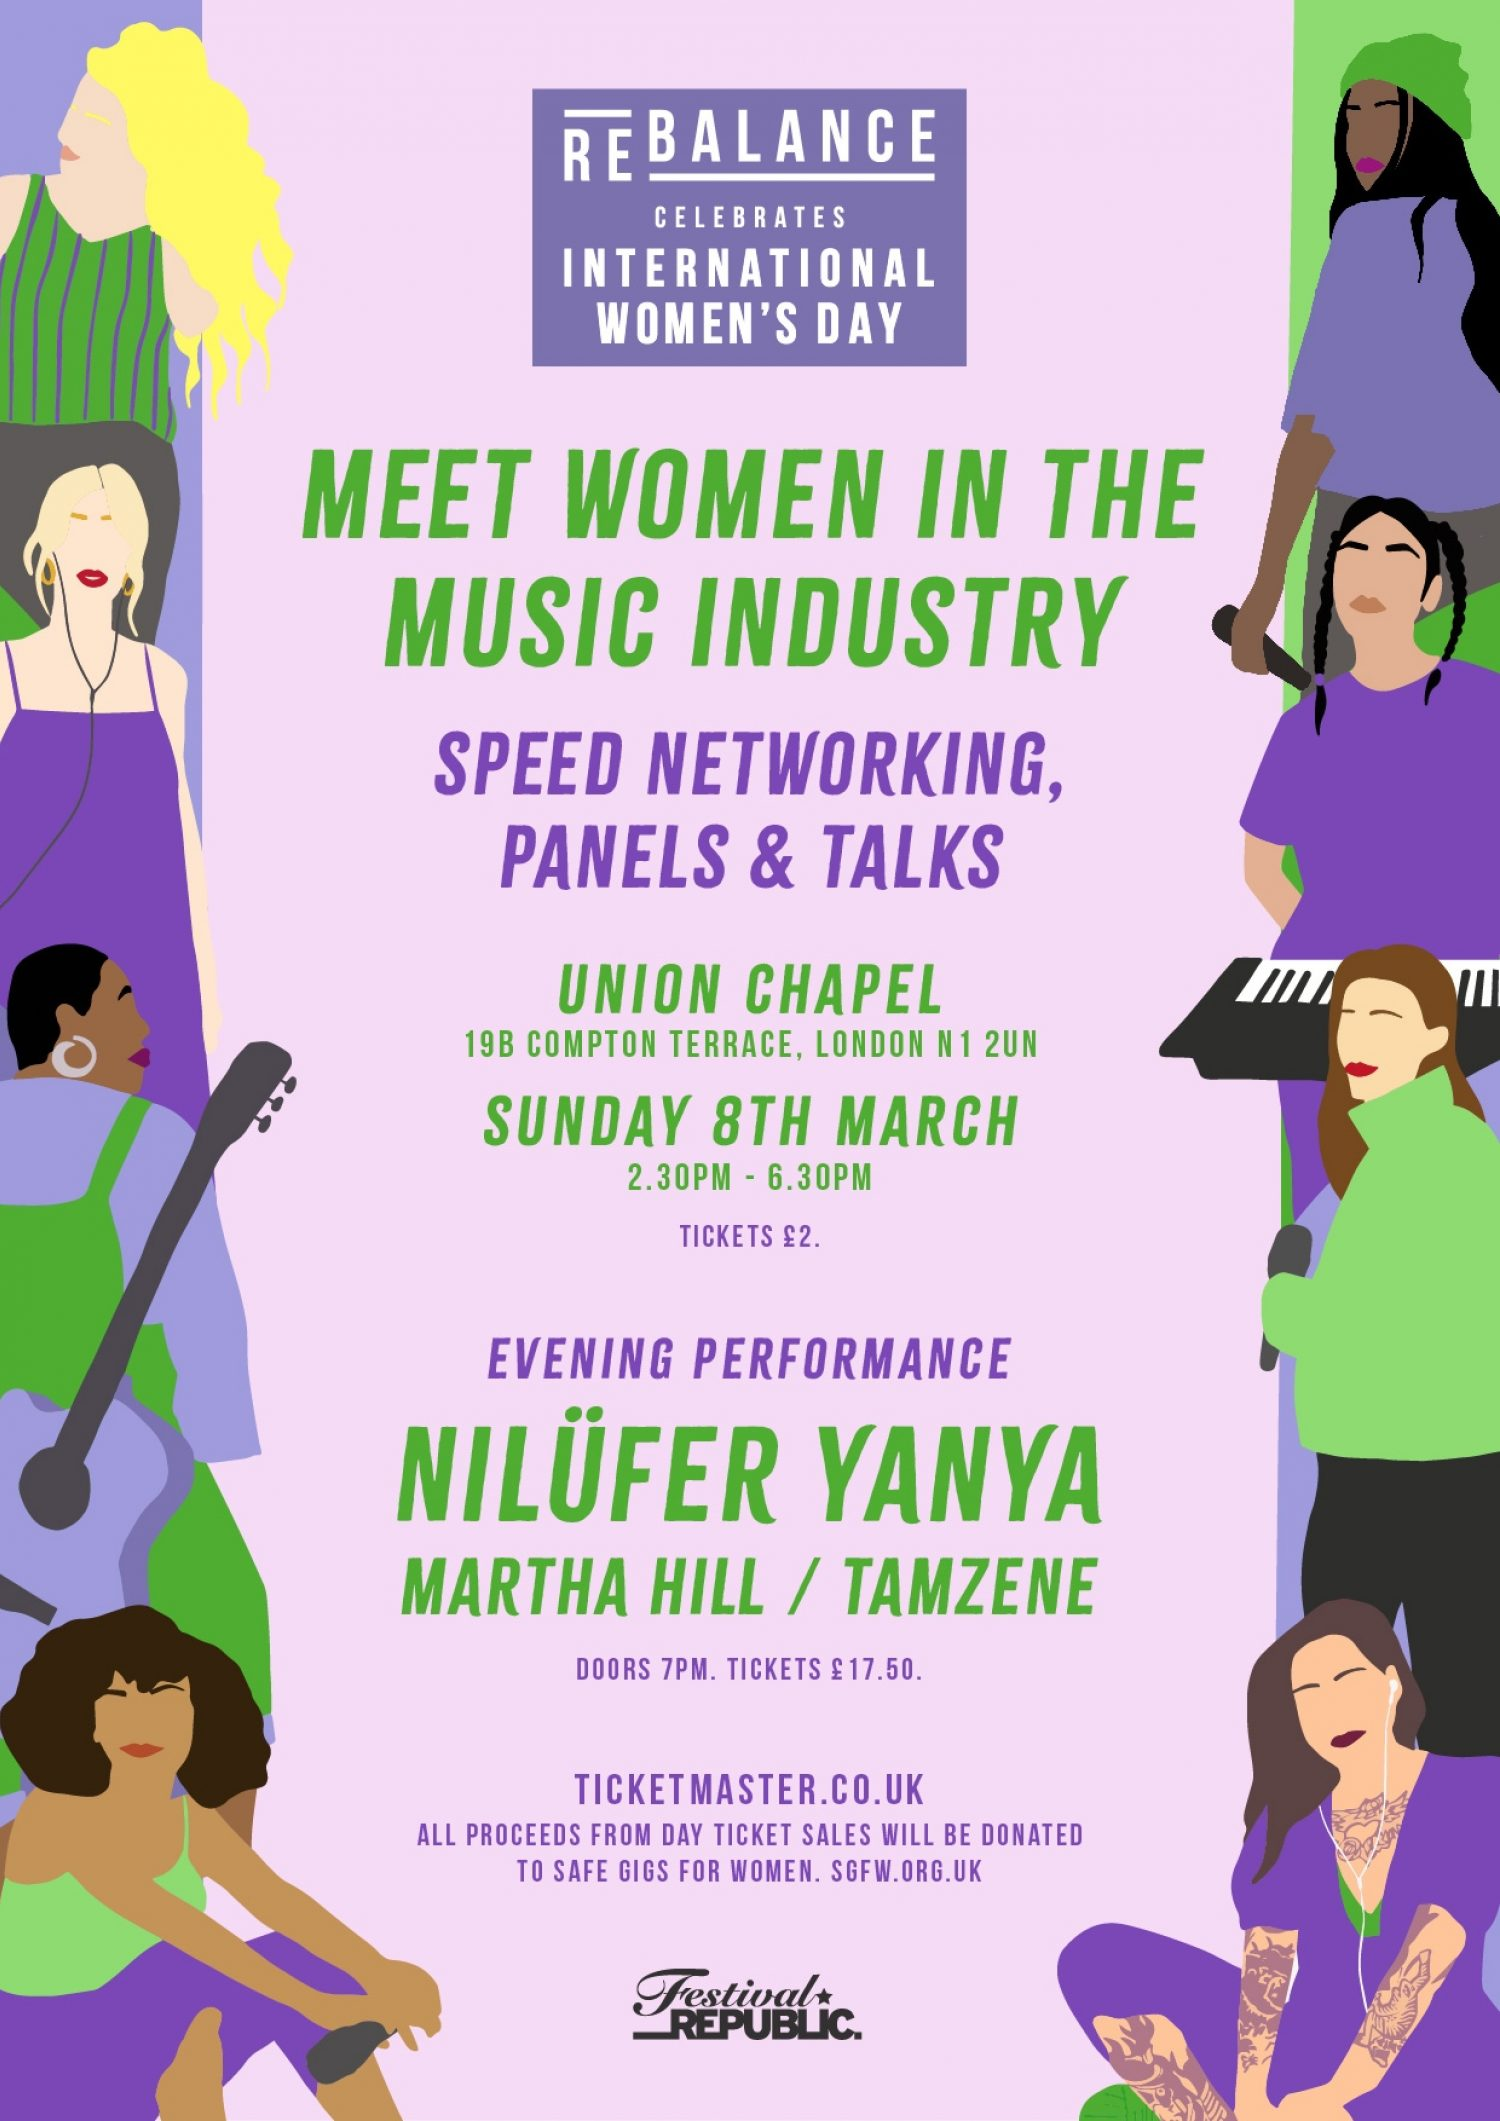 Festival Republic have launched a brand new event, ReBalance Celebrates International Women's Day